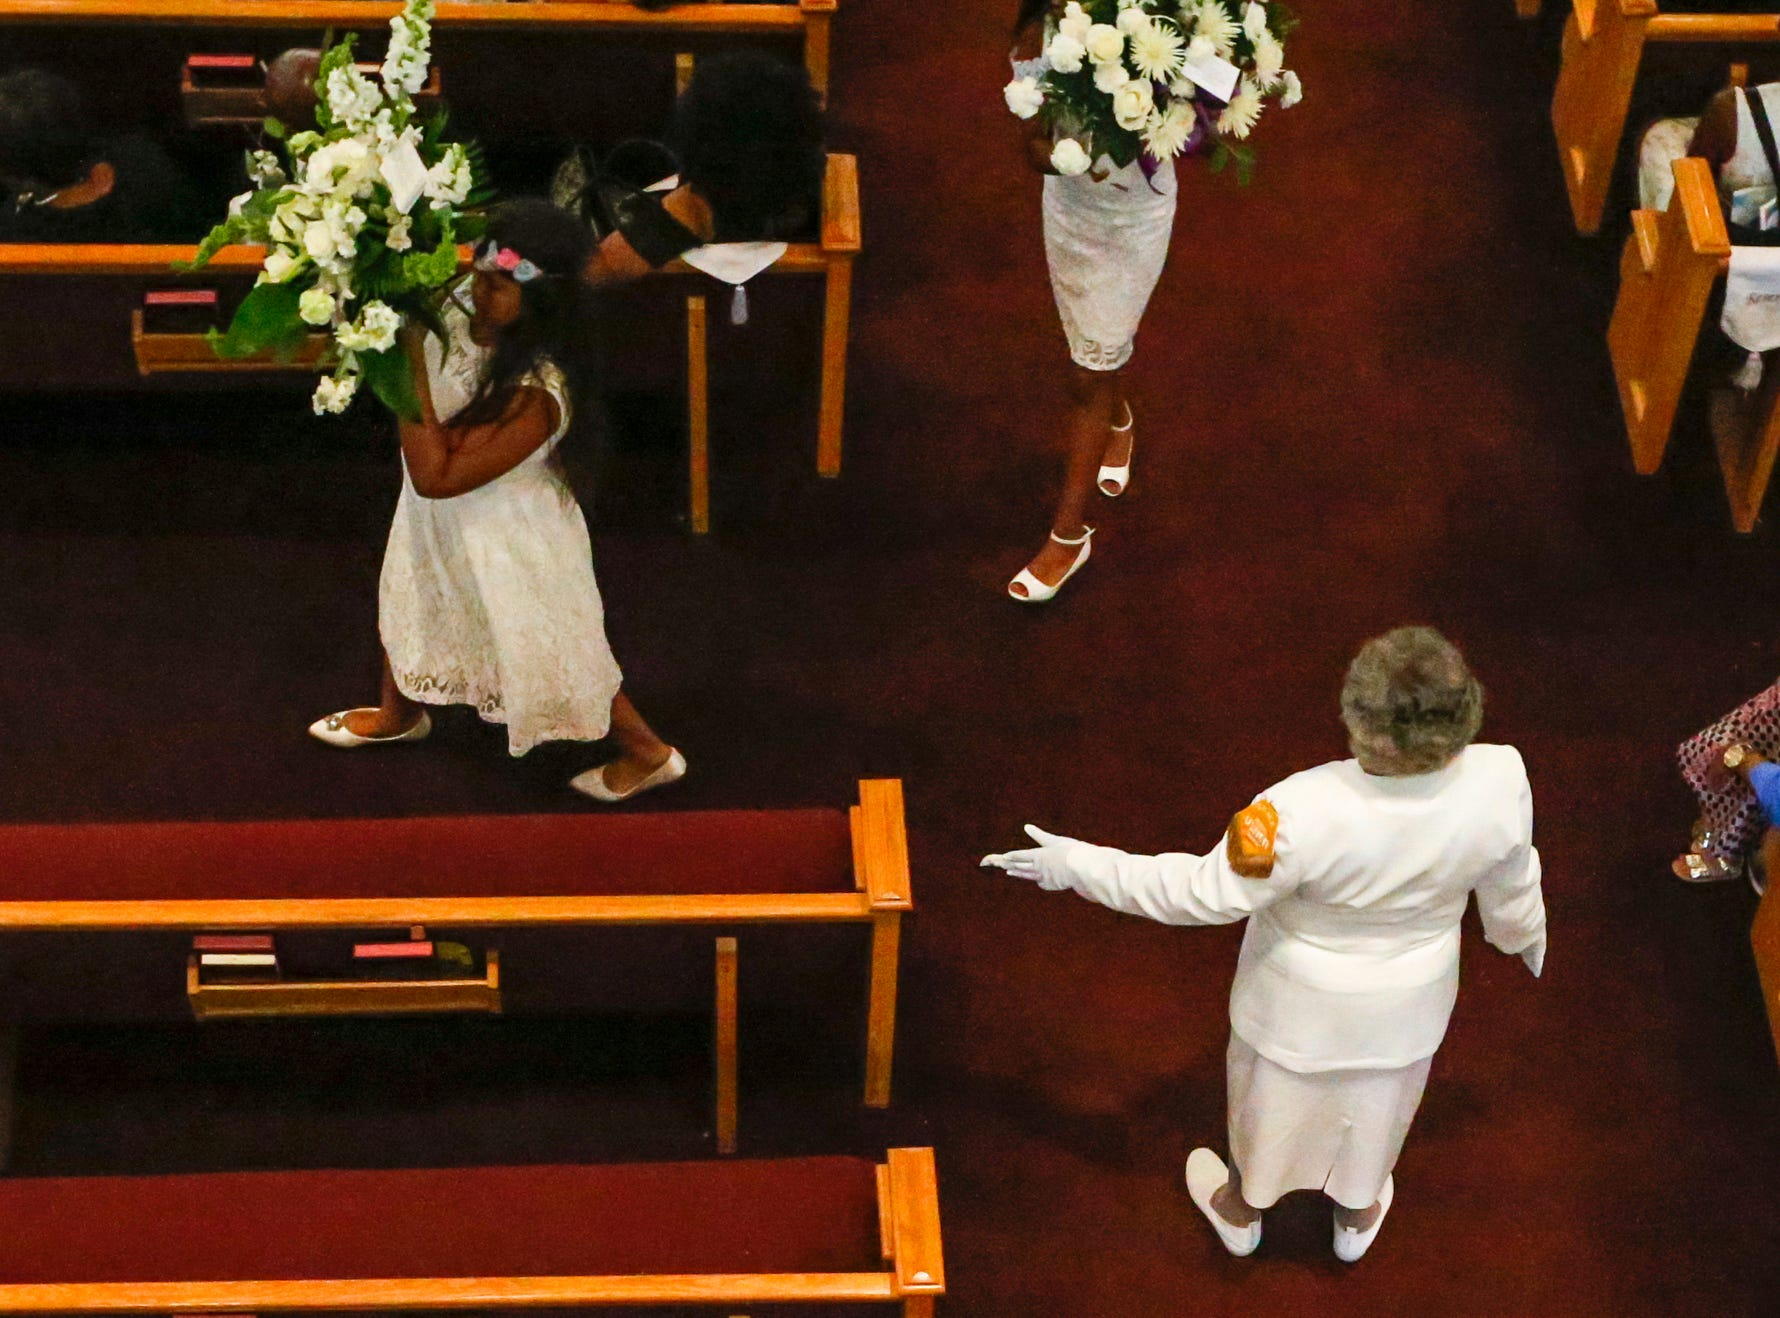 An usher directs young children outside before the pallbearers prepare to remove the caskets from the  homegoing service of Glenn Coleman, 40, Reece, 9, Evan, 7, and Arya, 1, at Grace Apostolic Church on Friday, July 27, 2018. Seventeen people were killed in the duck boat accident in Branson, Missouri, nine of them were members of the Coleman family.